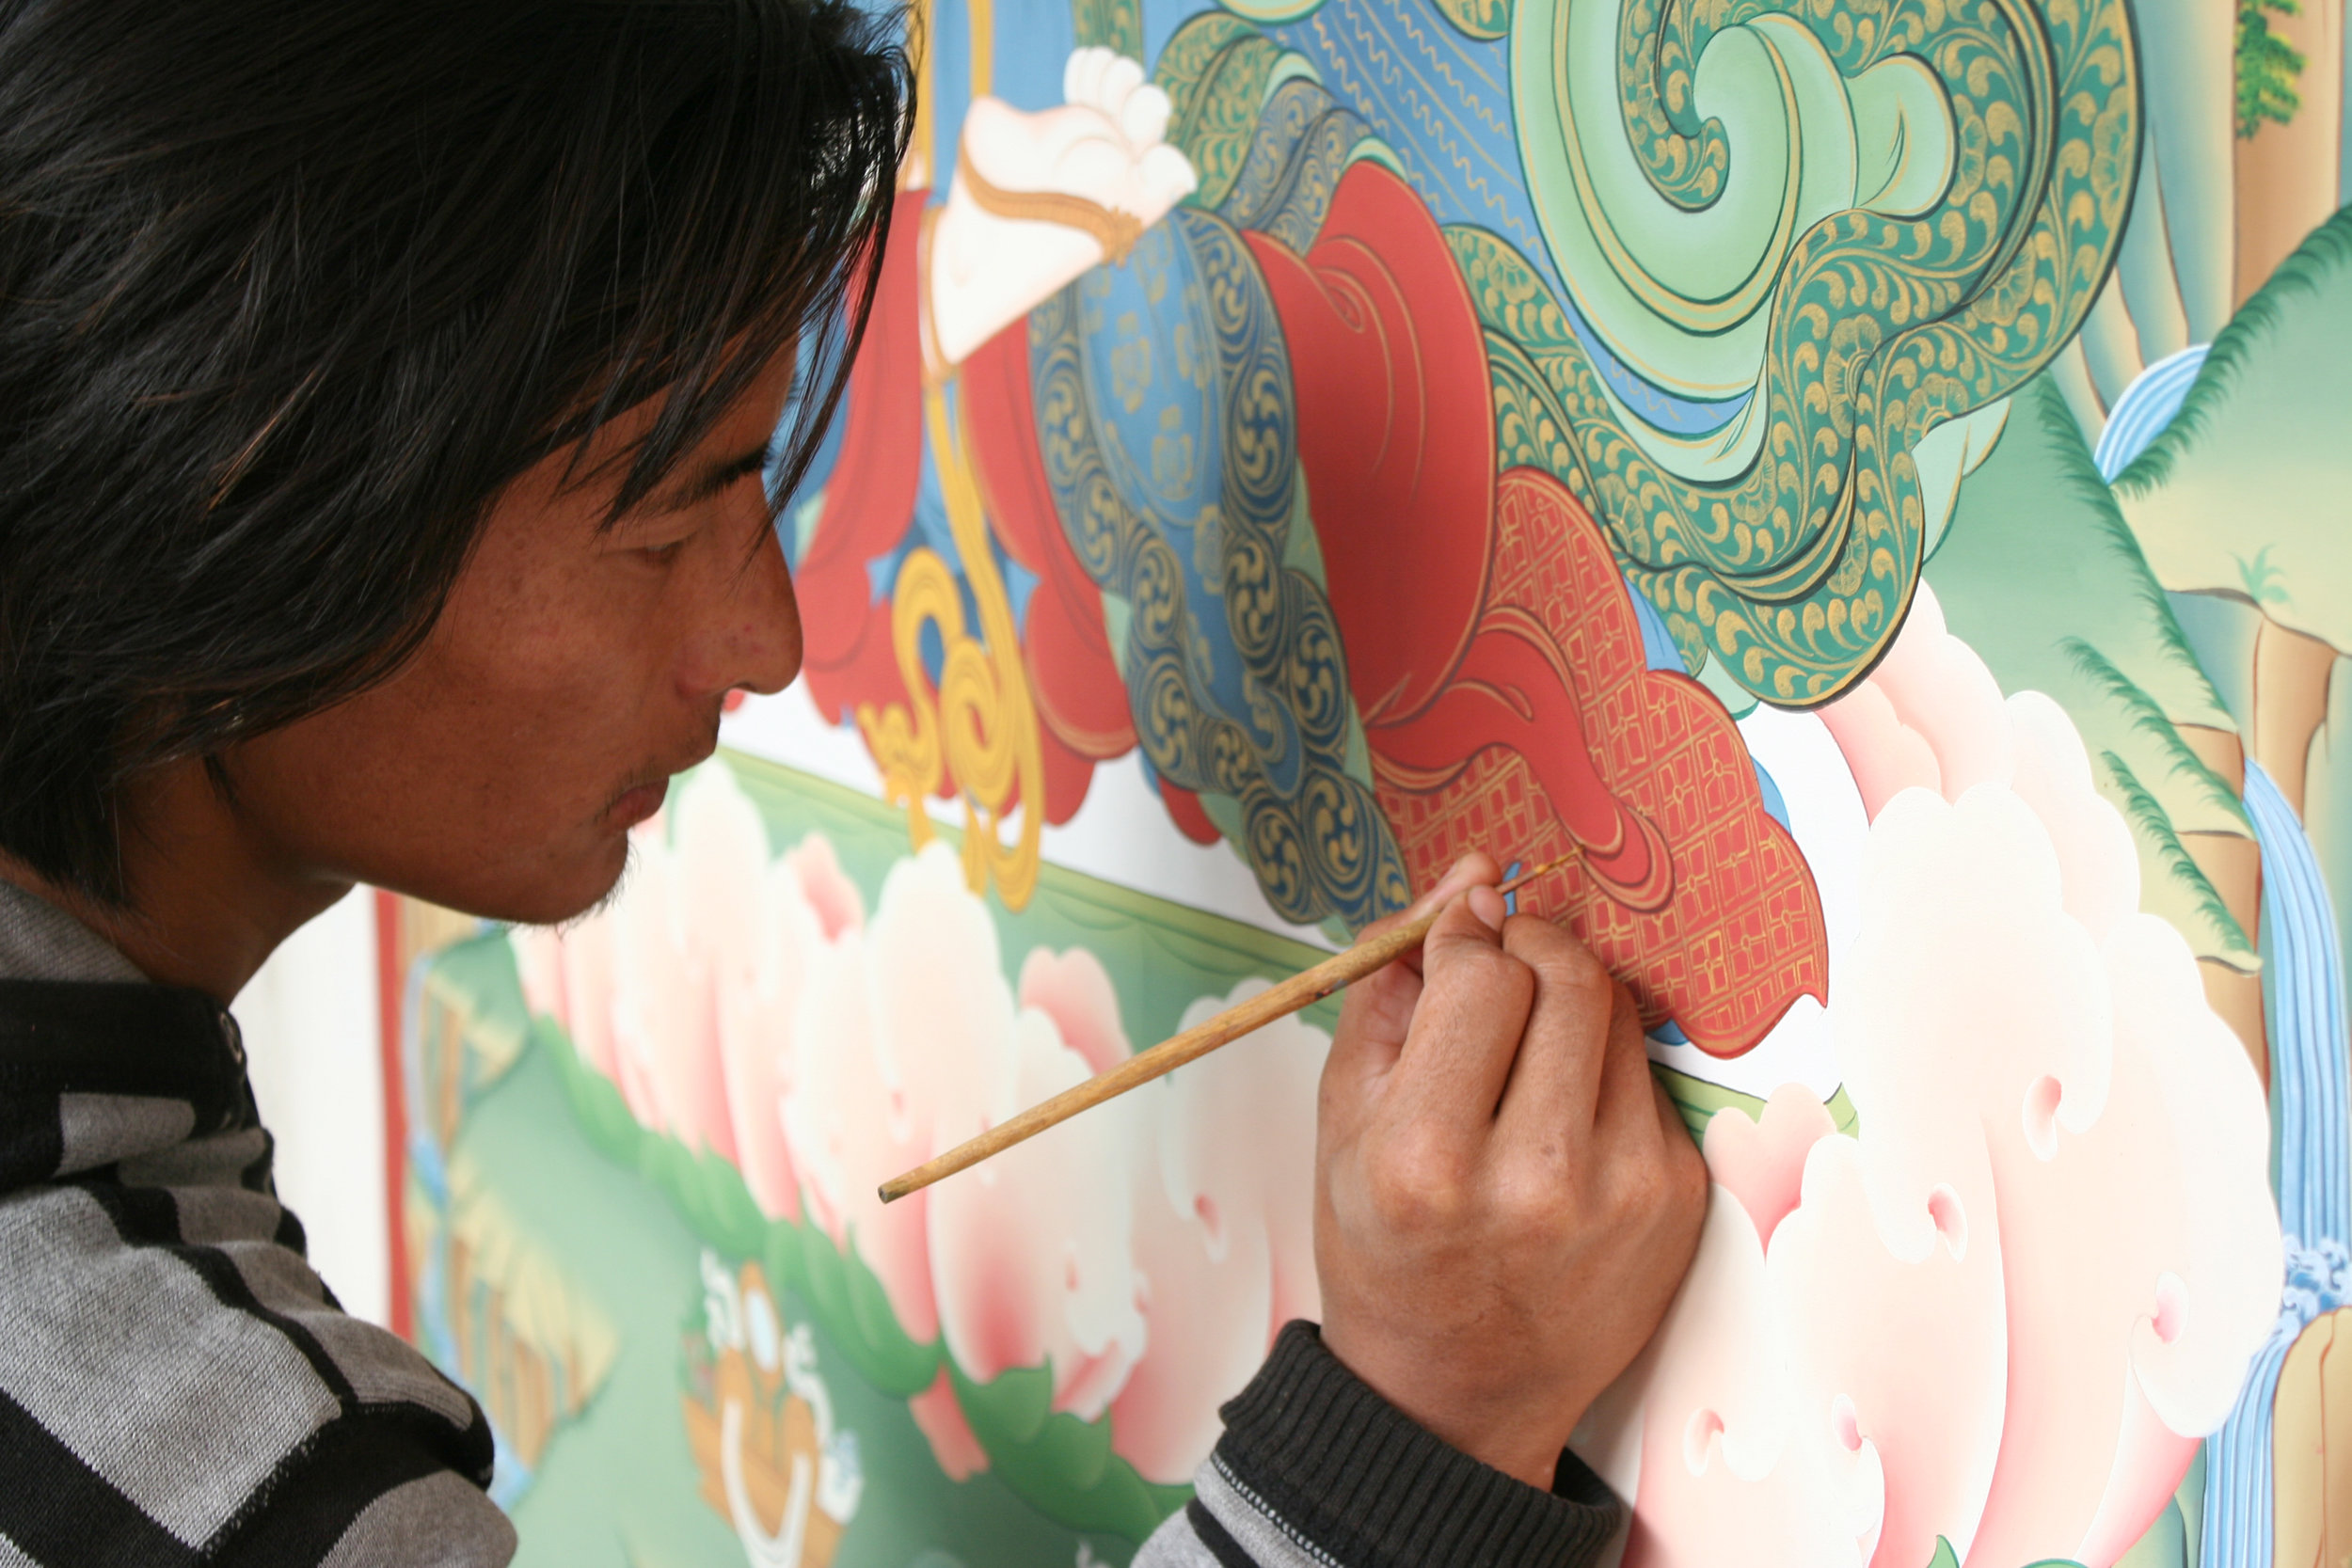 Sonam Rinzin inking details on cloth with gold paint.